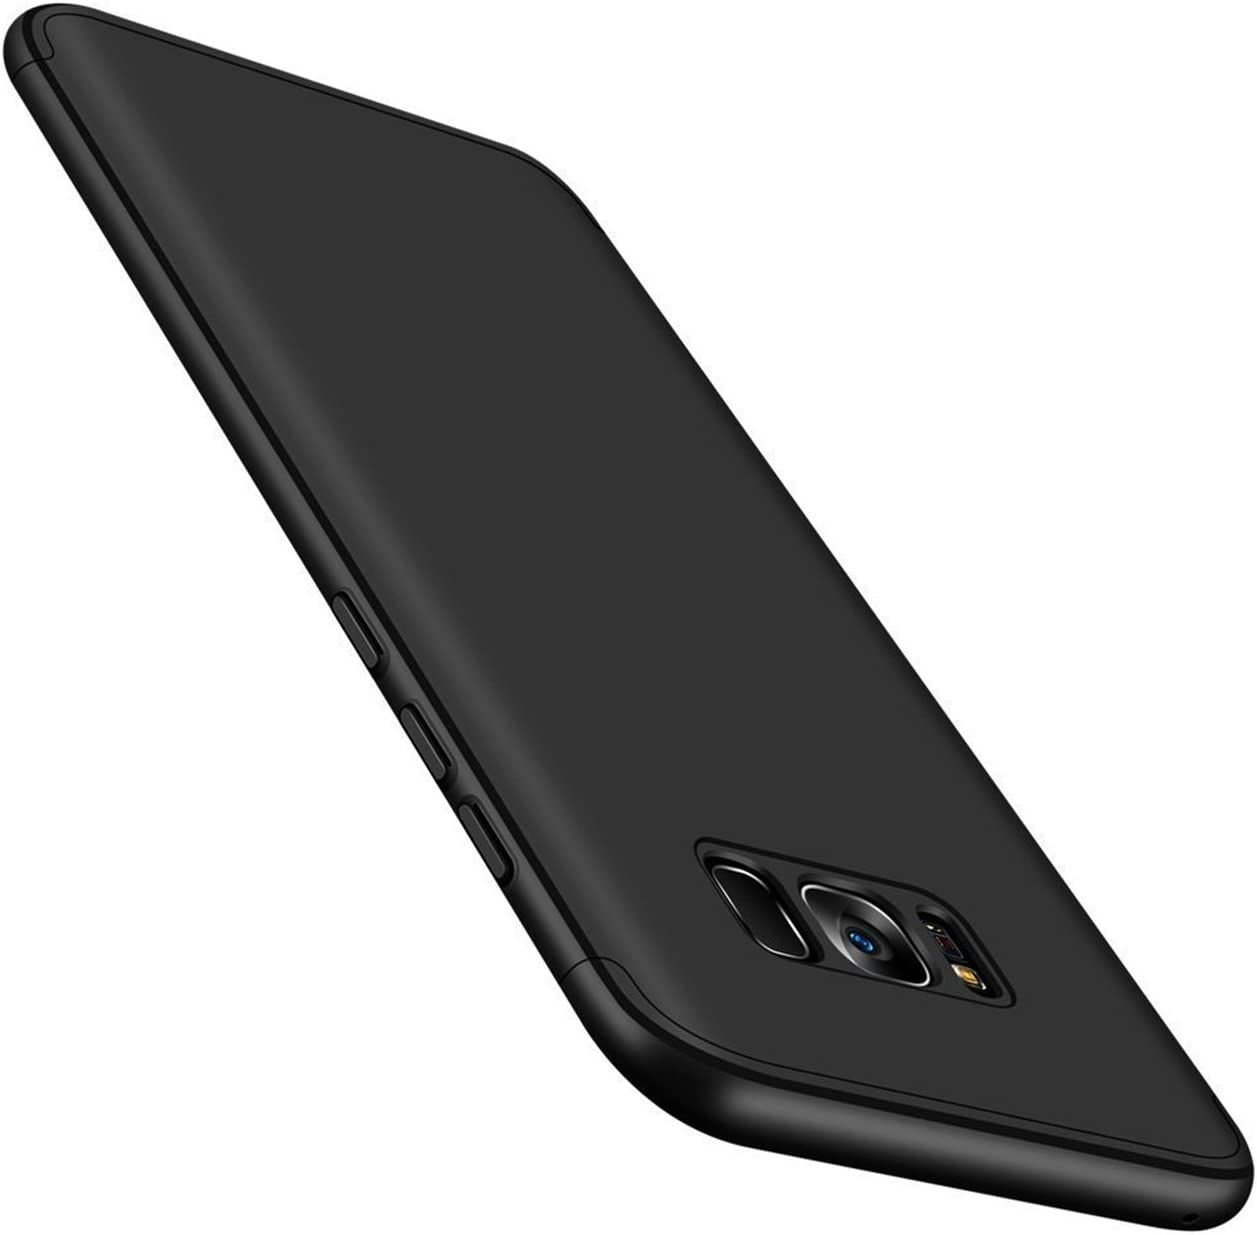 Qissy® Carcasa Samsung Galaxy S8 Plus,3 in 1 Todo Incluido Anti-Scratch Ultra Slim Protective 360 PC Case Cover para Samsung Galaxy S8/S8 + (Samsung Galaxy S8 Plus, Negro): Amazon.es: Electrónica